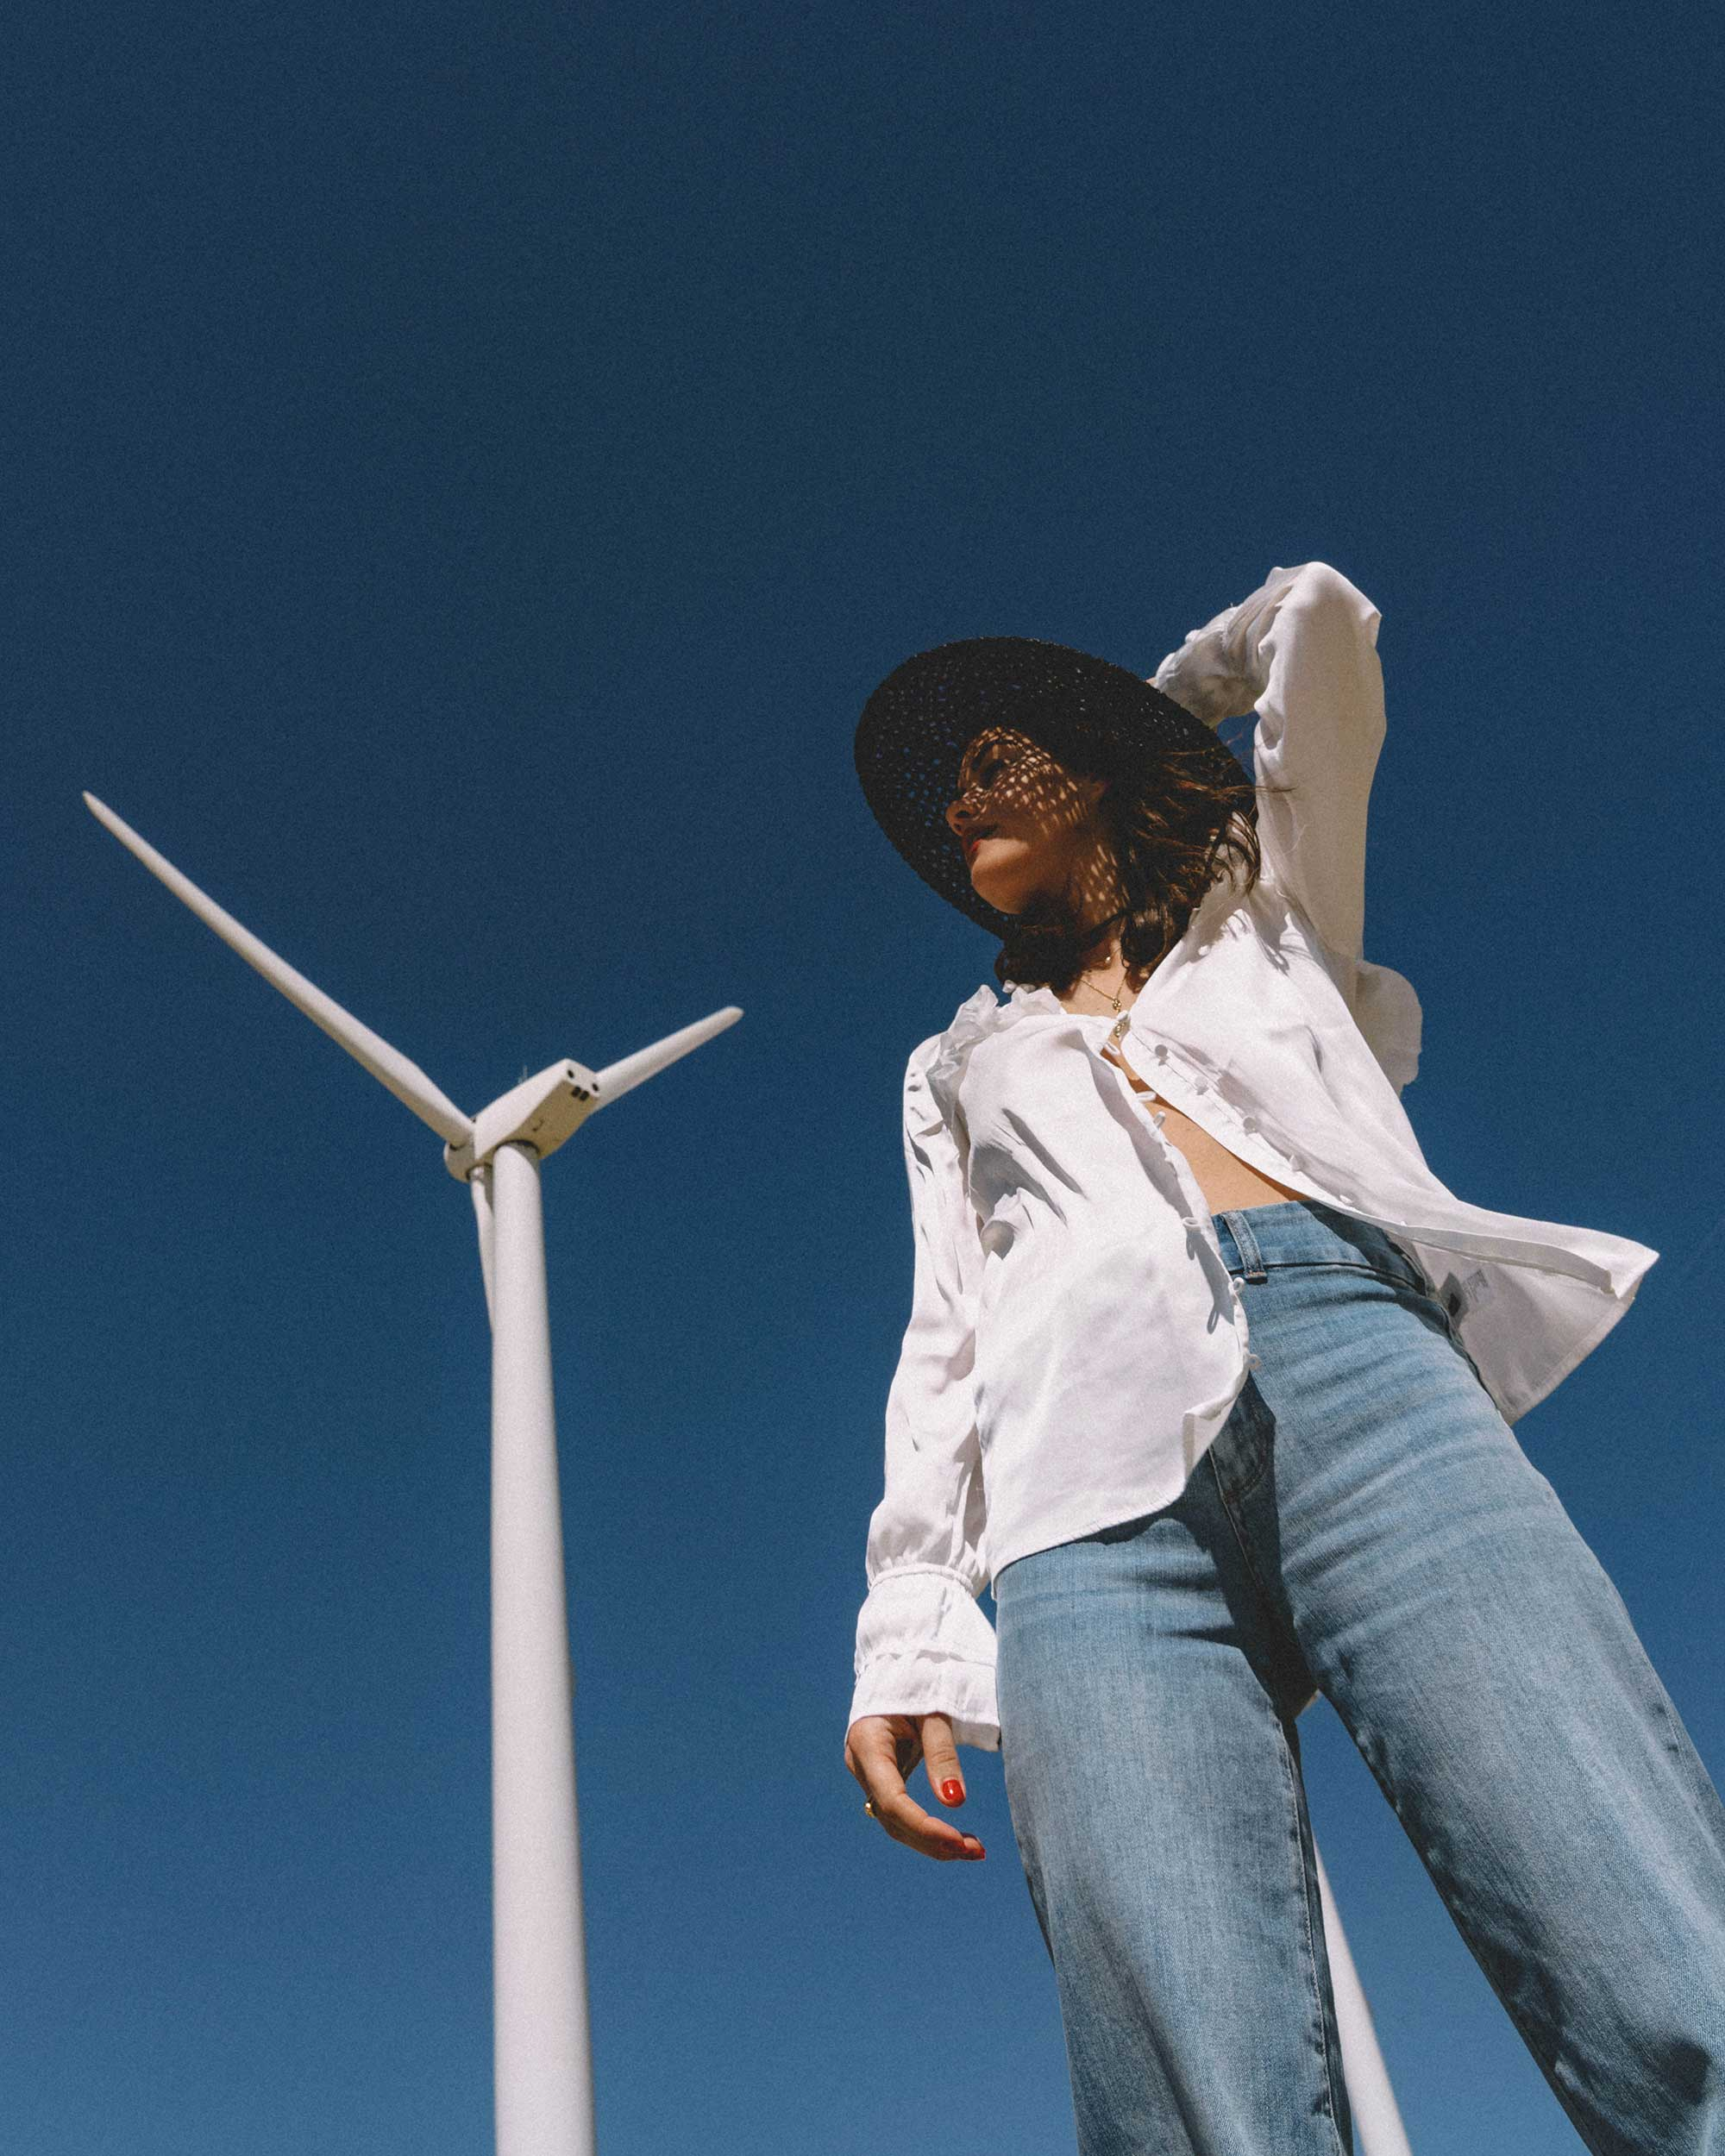 Sarah Butler of Sarah Styles Seattle wears Paige Anguilla Long-Sleeve Blouse with Layered Ruffle Trim, Paige Sutton High Waist Wide Leg Jeans, and Lack of Color Women's Sunnydip Noir Hat in Palm Springs for Coachella Festival Outfit | @sarahchristine5.jpg